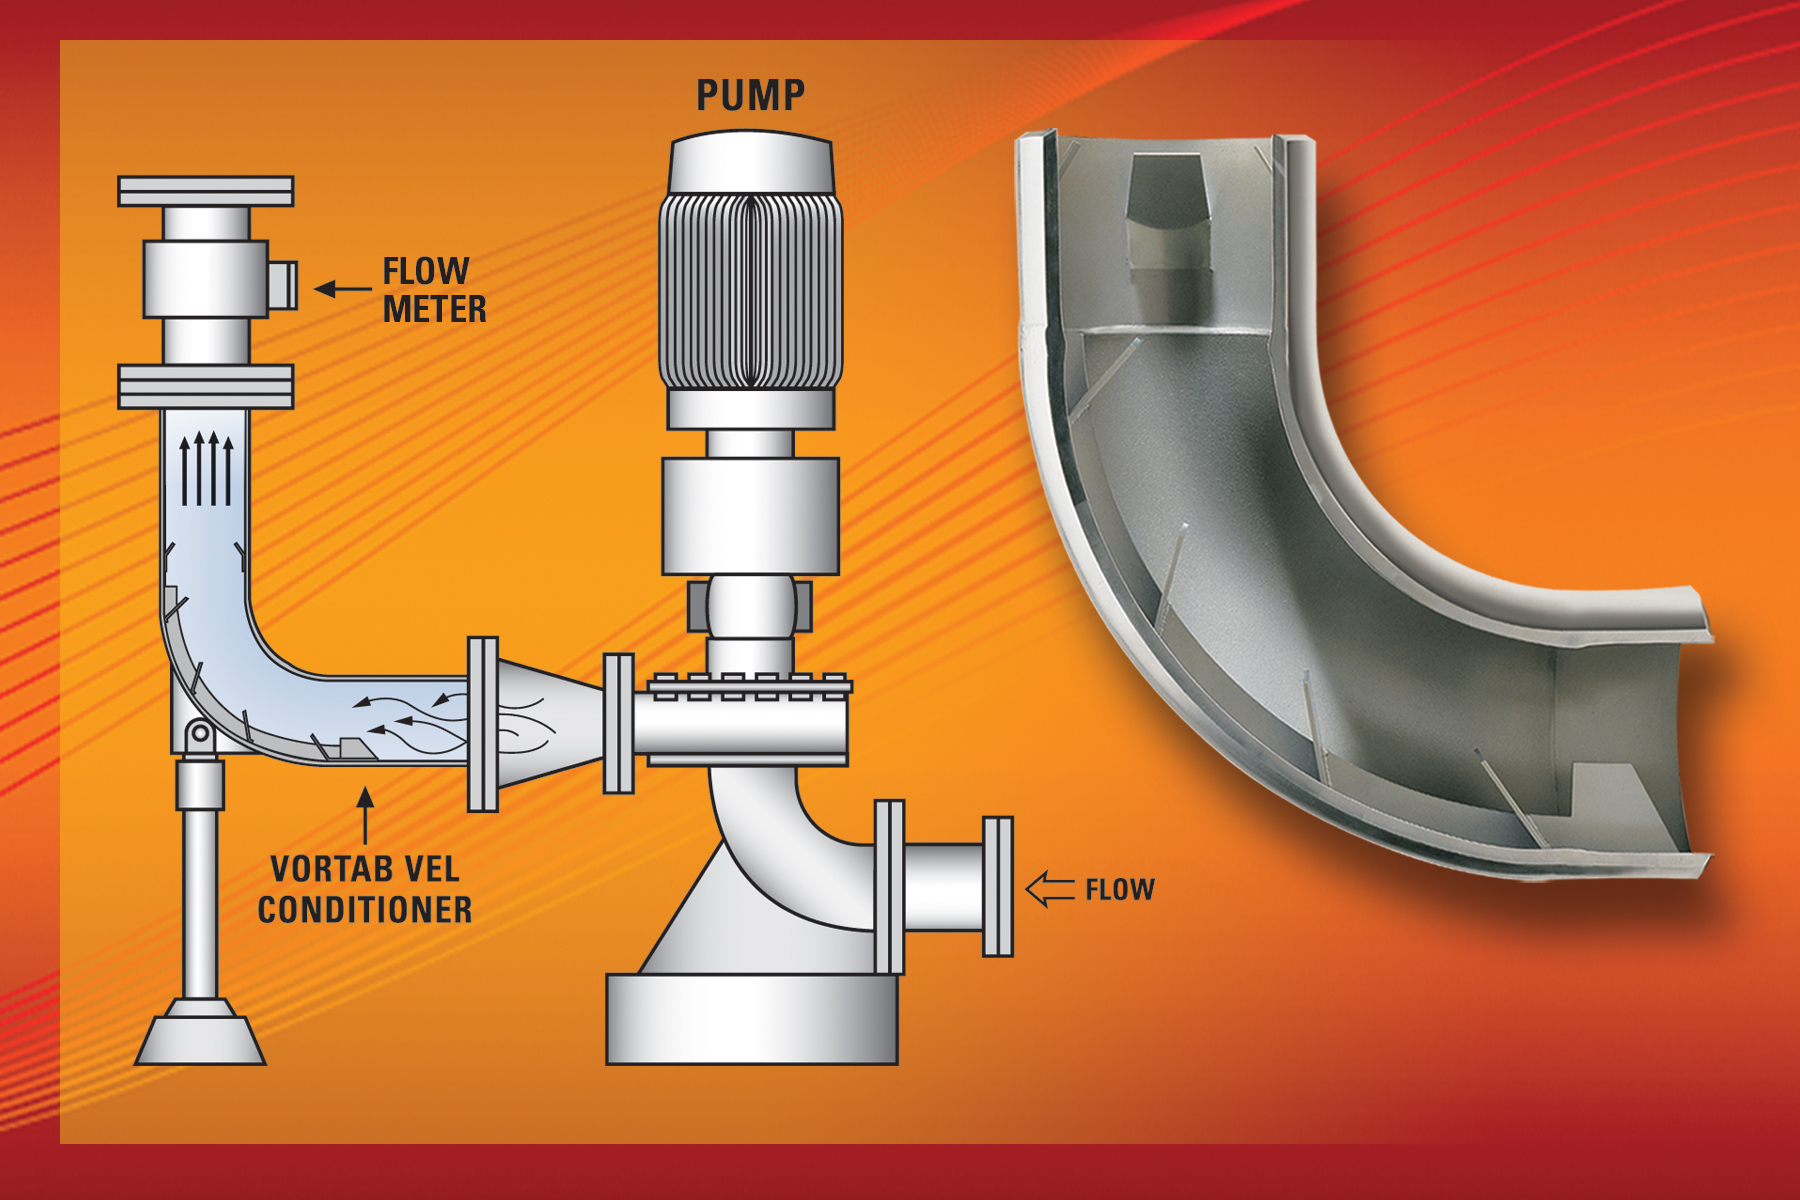 Vortab Co.'s Elbow Flow Conditioner removes asymmetric velocity profiles